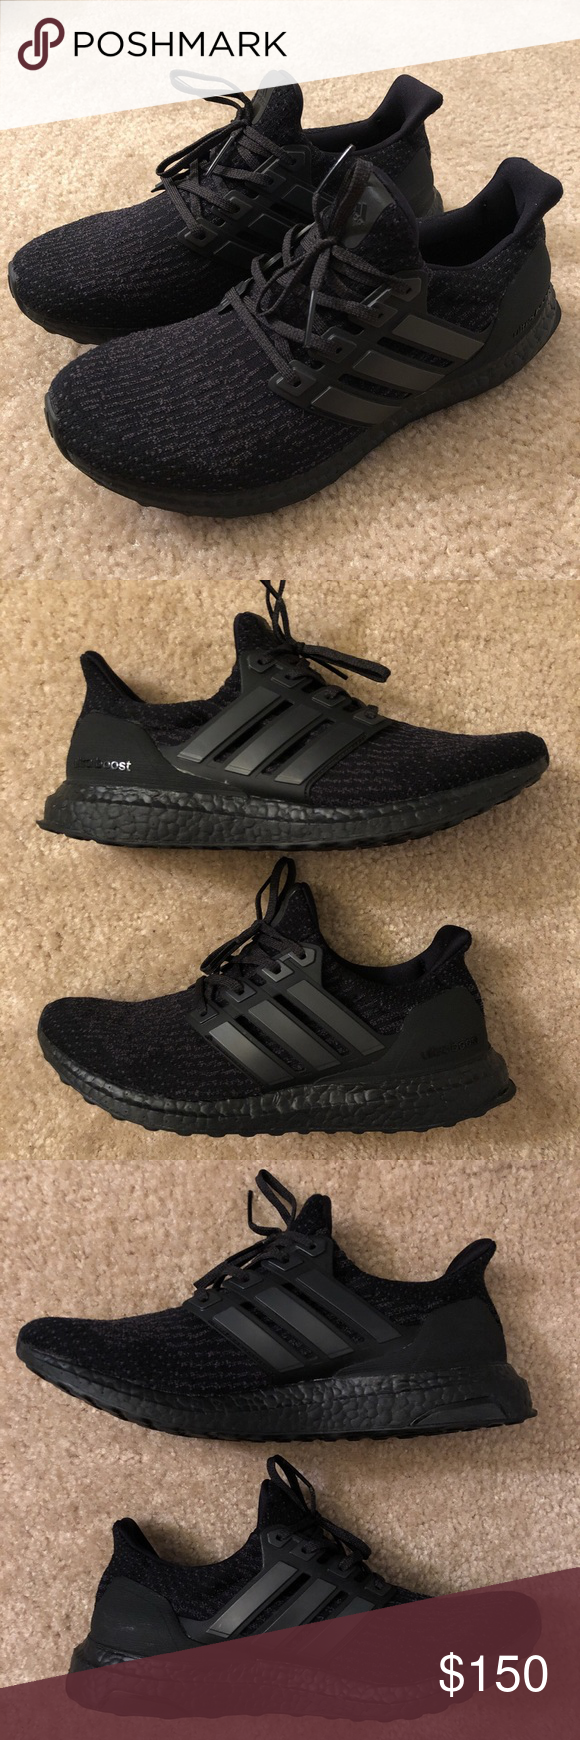 official photos 46a5b b4cbc Ultra Boost 3.0 Triple Black 2.0 CG3038 Men s US size 8.5 Authentic without  original box Condition 9.5 10 adidas Shoes Sneakers